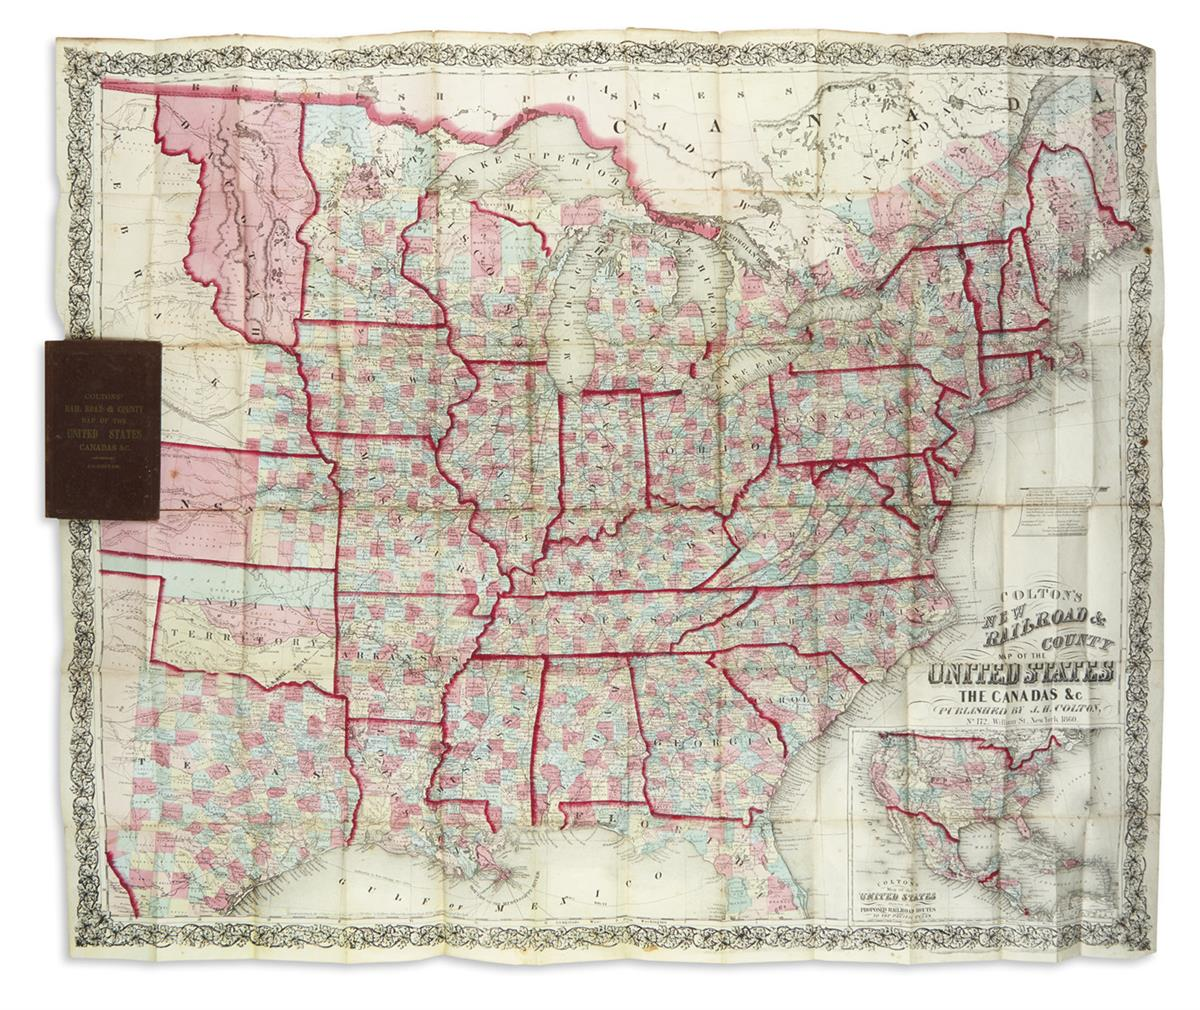 COLTON, JOSEPH HUTCHINS. Coltons New Rail Road & County Map of the United States, the Canadas &c.